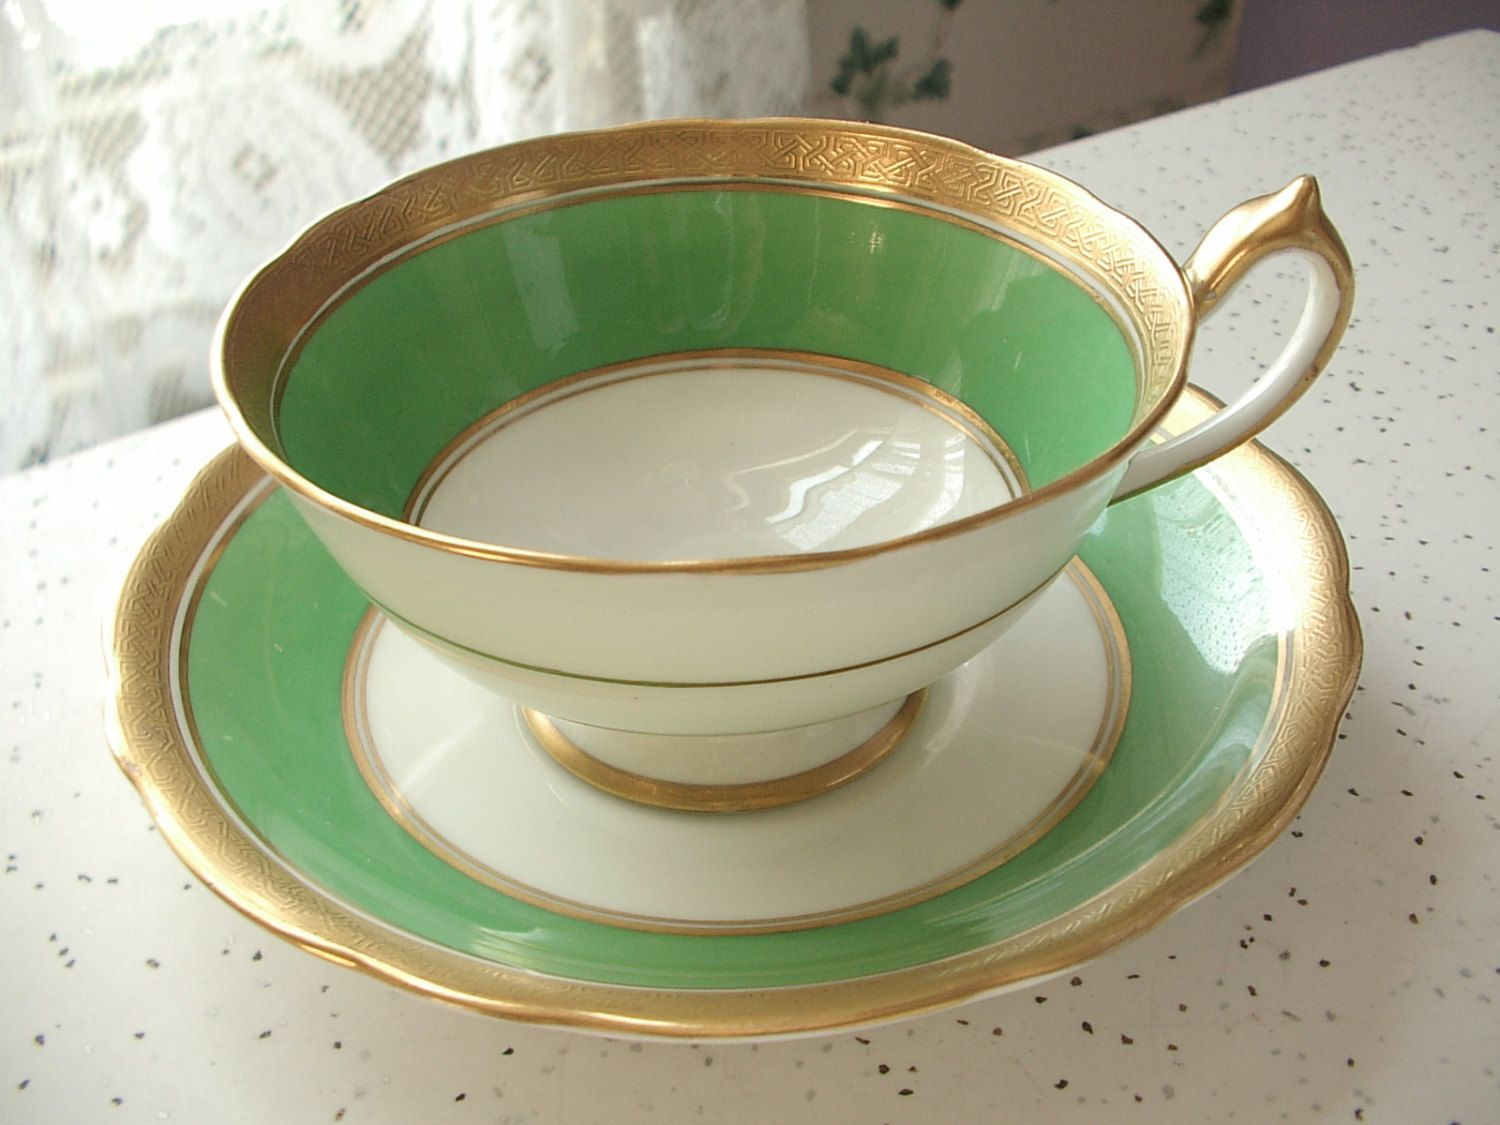 Antique green tea cup and saucer set vintage 1920 s star Paragon